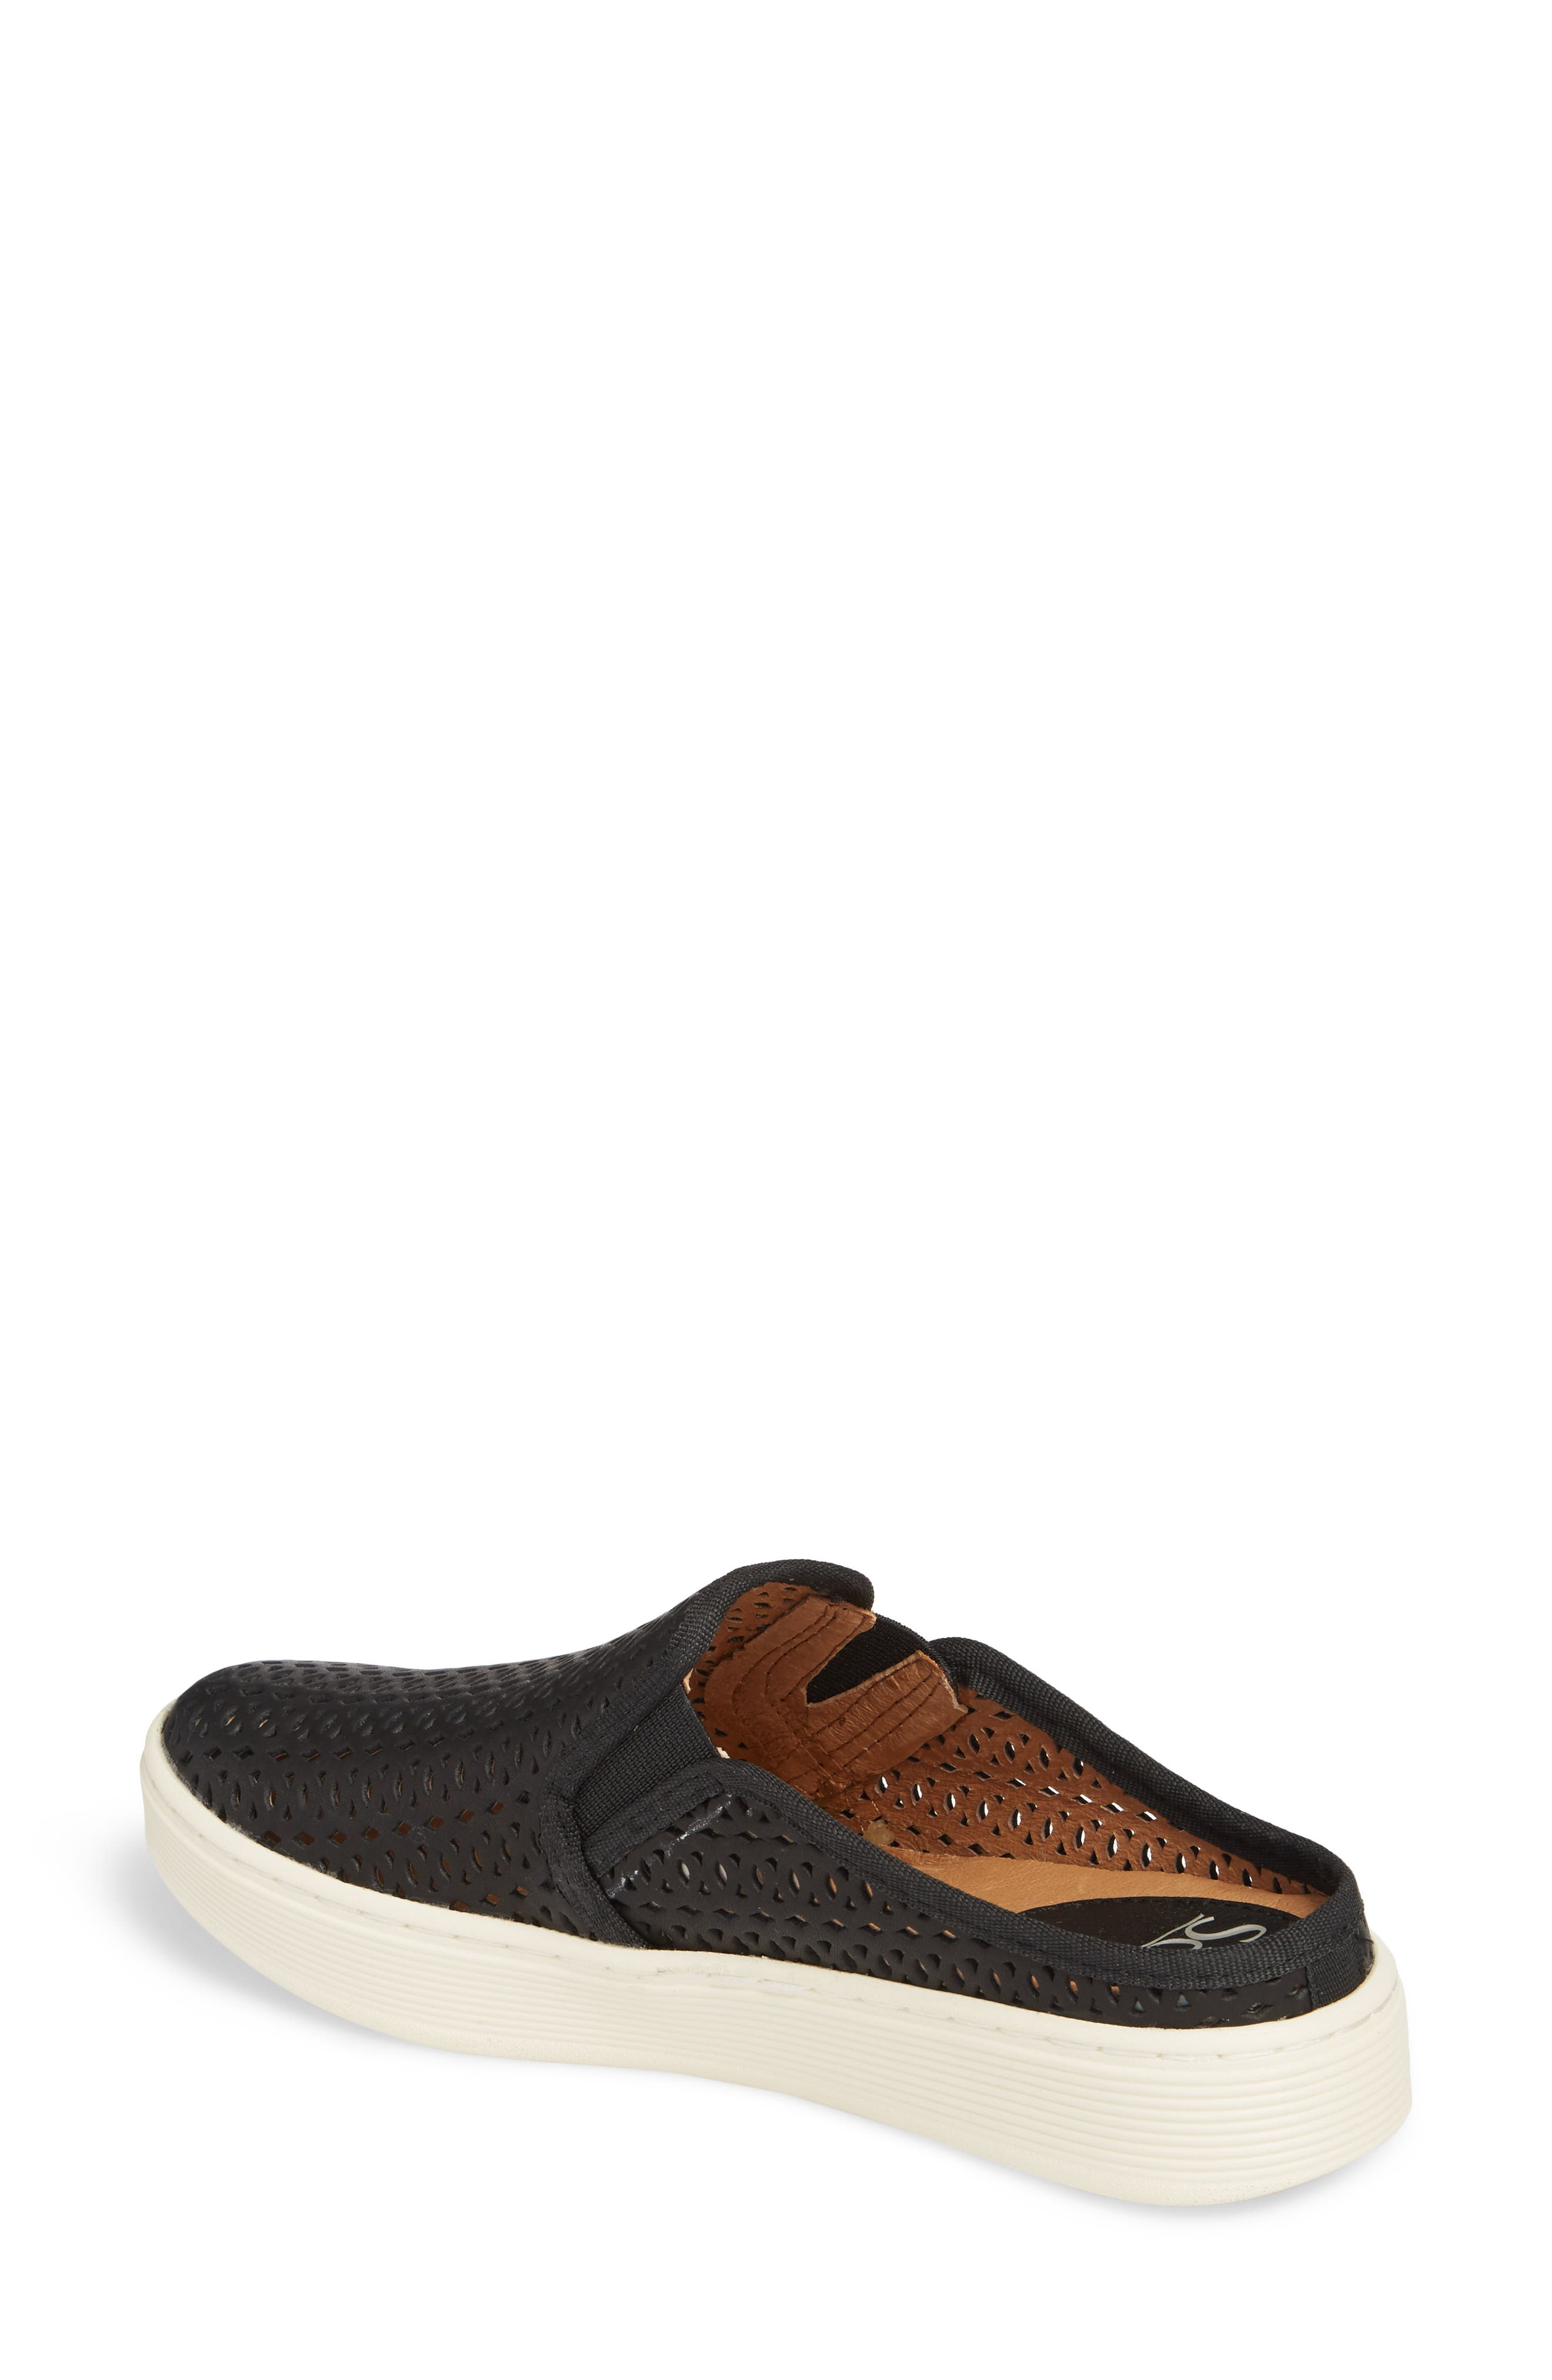 Somers II Sneaker,                             Alternate thumbnail 2, color,                             Black Leather